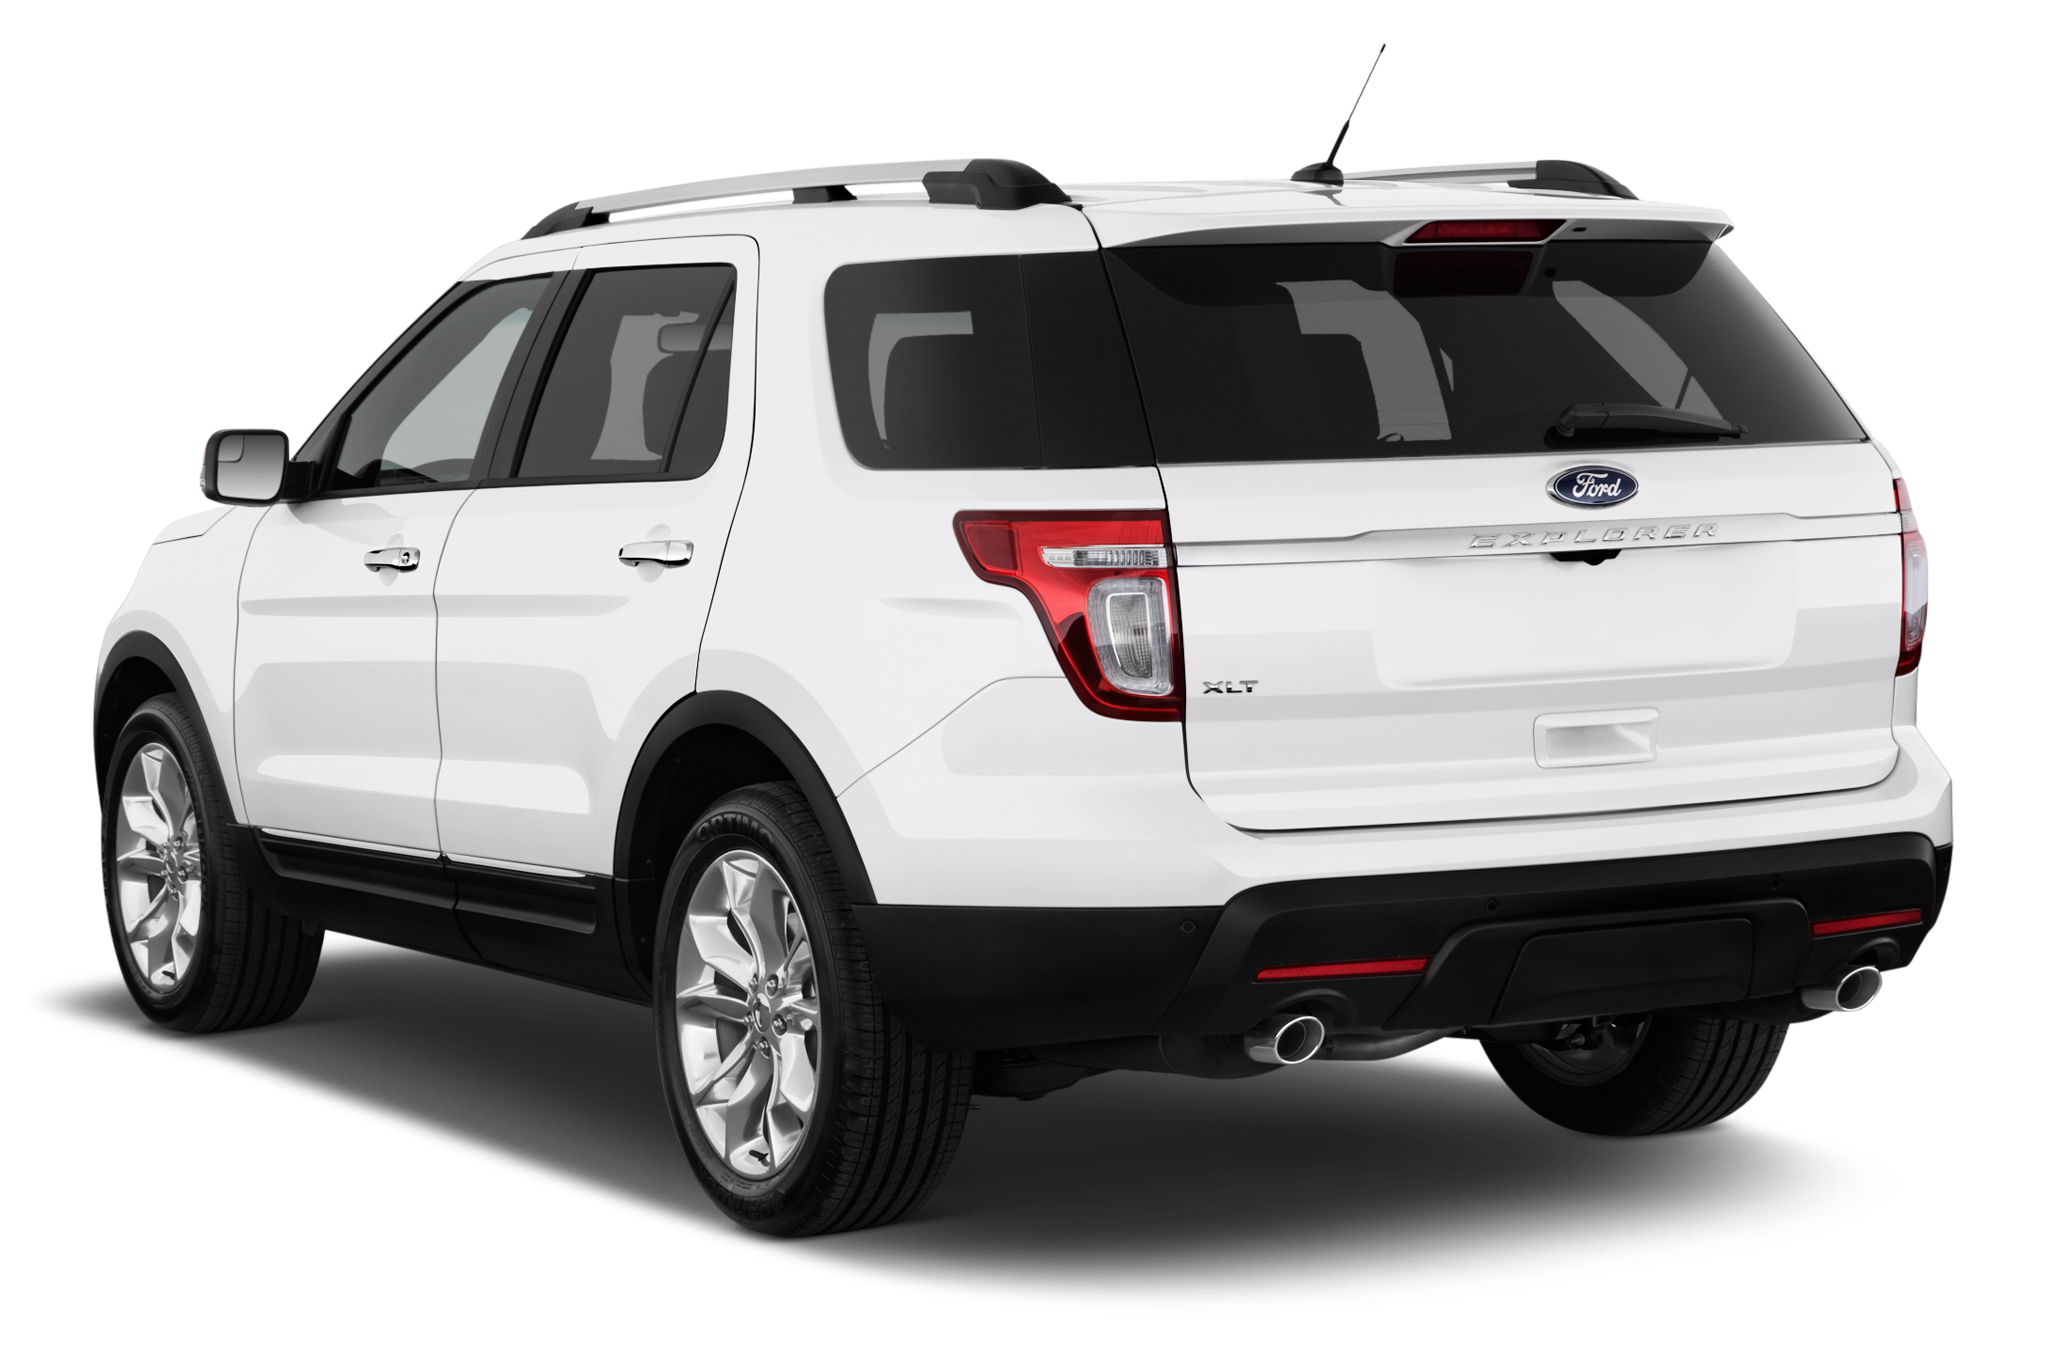 Ford Explorer Prototype Shows Off Revised Front And Rear. Ford. 2013 Ford Explorer Tailgate Diagram At Scoala.co